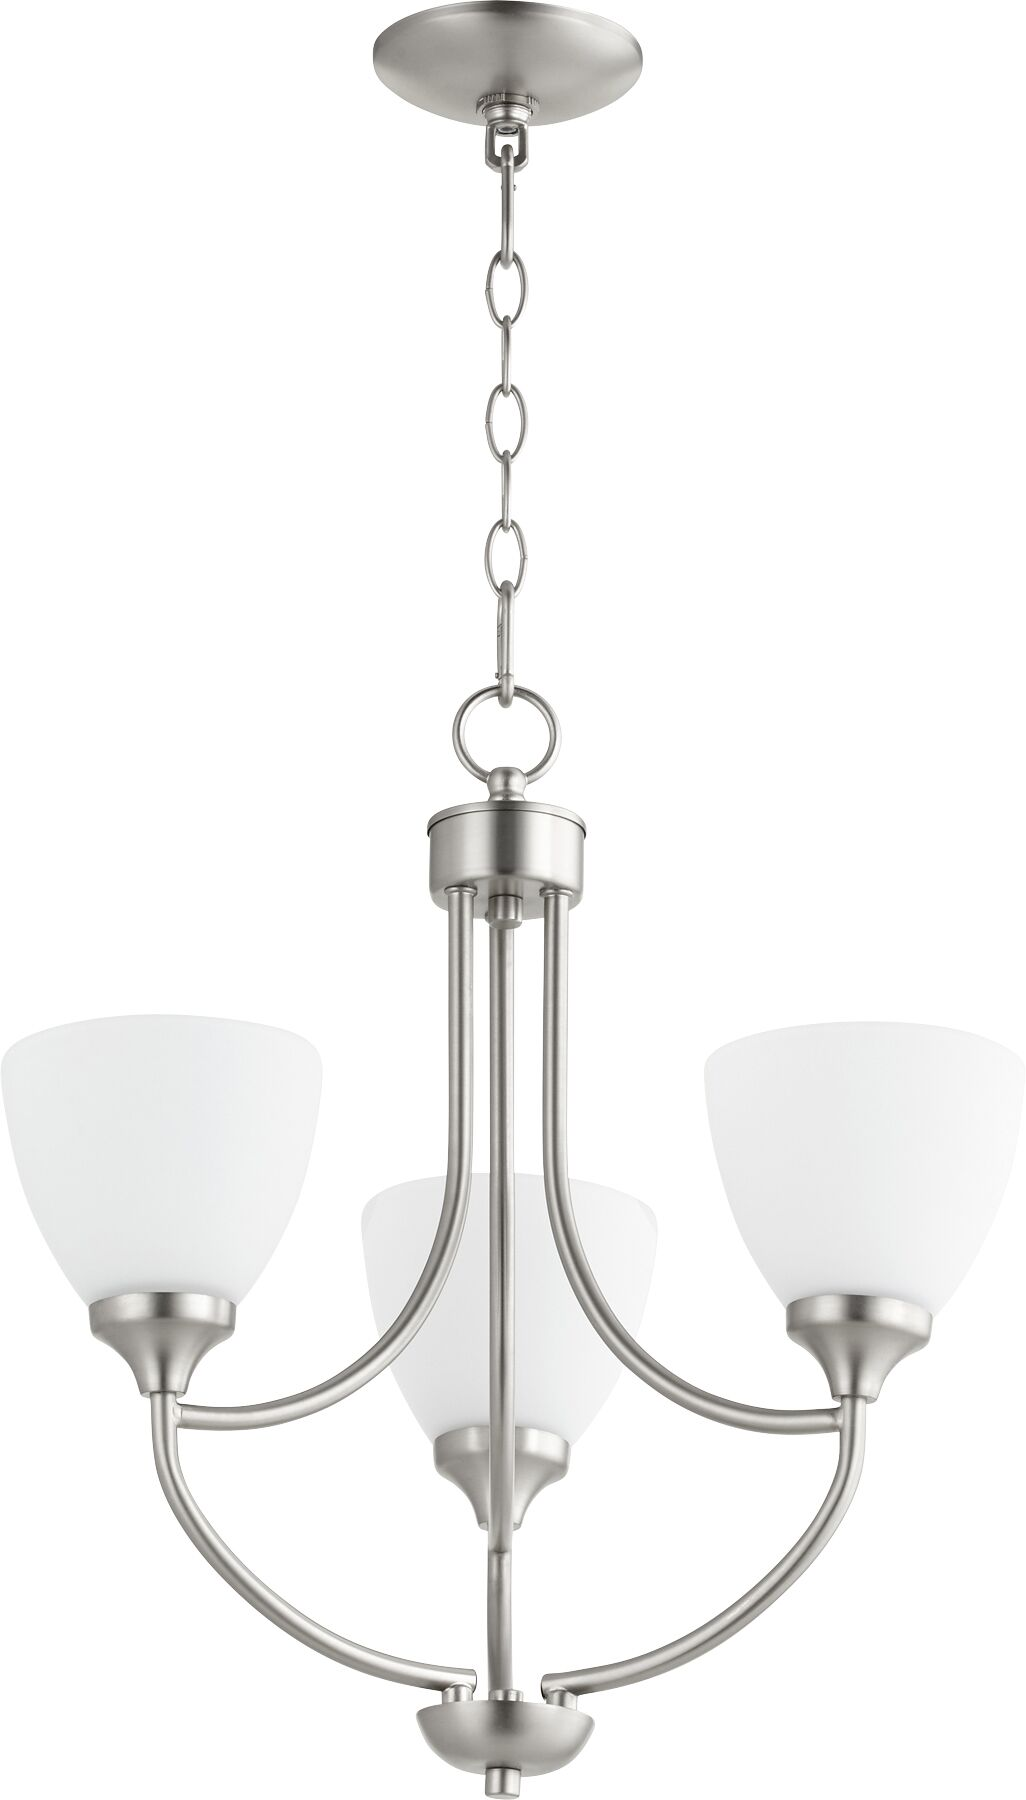 Enclave 3-Light Shaded Chandelier Finish: Satin Nickel